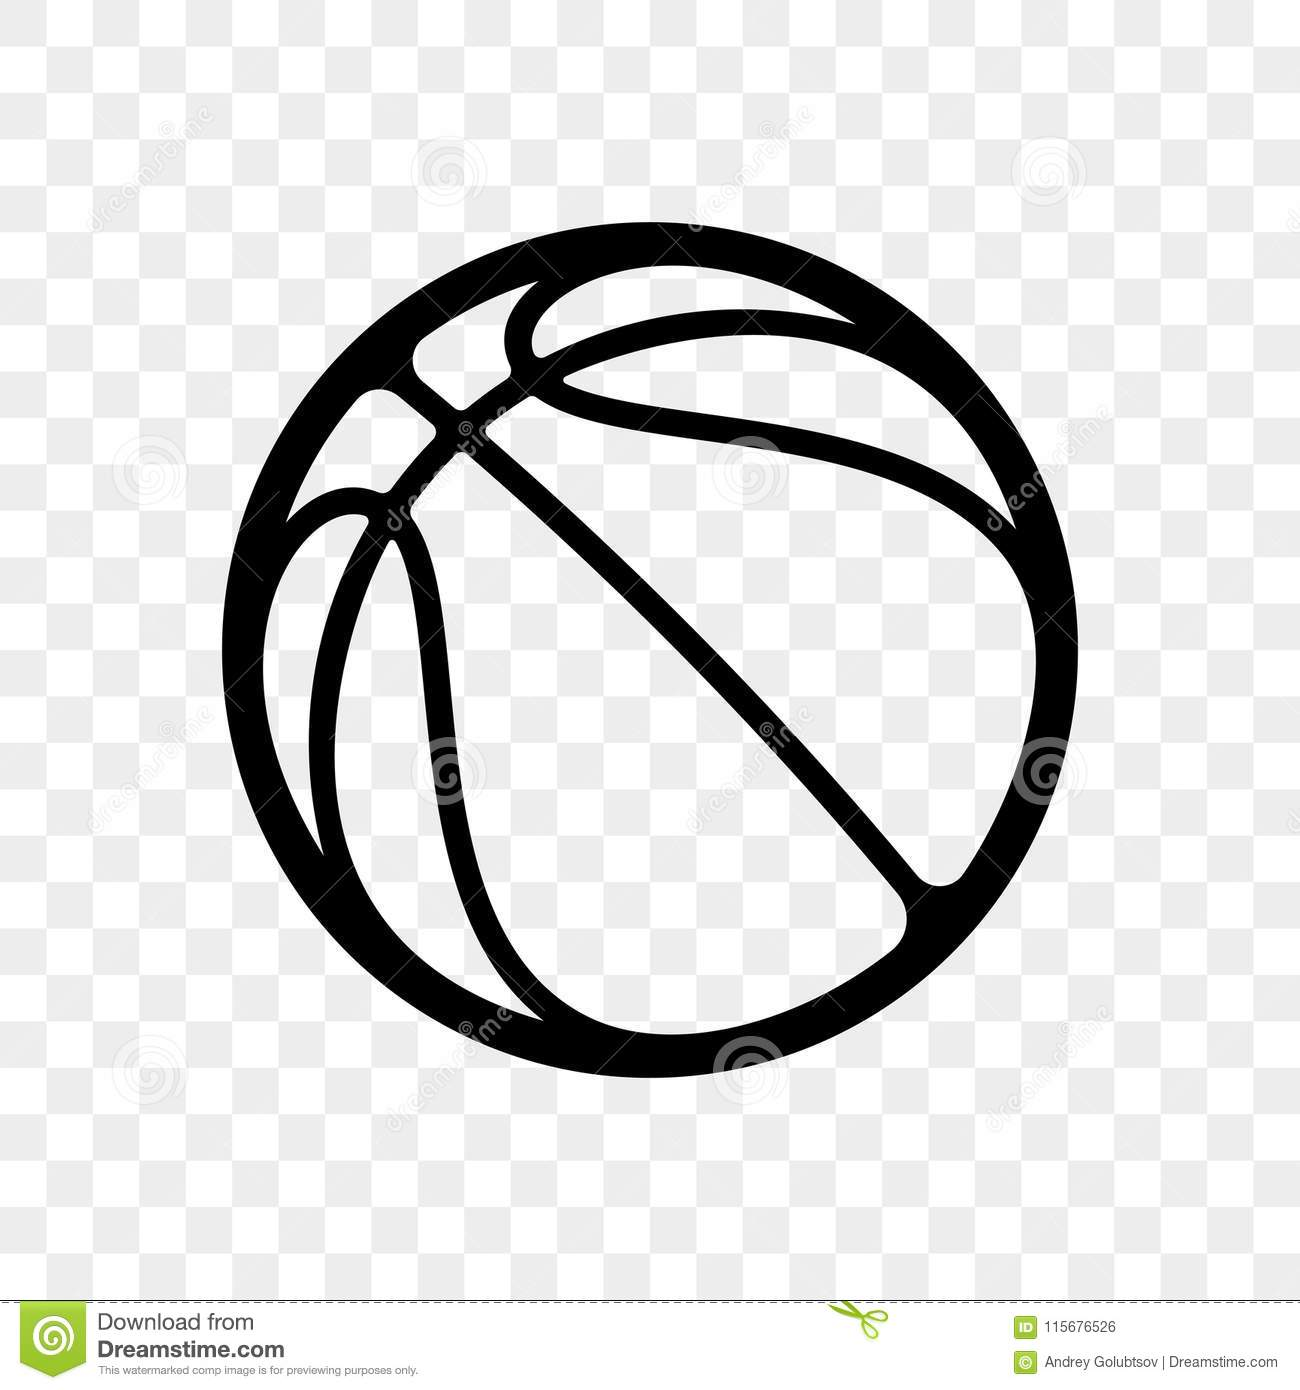 Basketball Ball Logo Vector Icon Isolated Stock Vector Illustration Of Play Activity 115676526 • according to your understanding, what does sportsmanship mean to you? https www dreamstime com basketball logo vector icon isolated transparent background vector outline sport emblem basketball fan club basketball ball image115676526